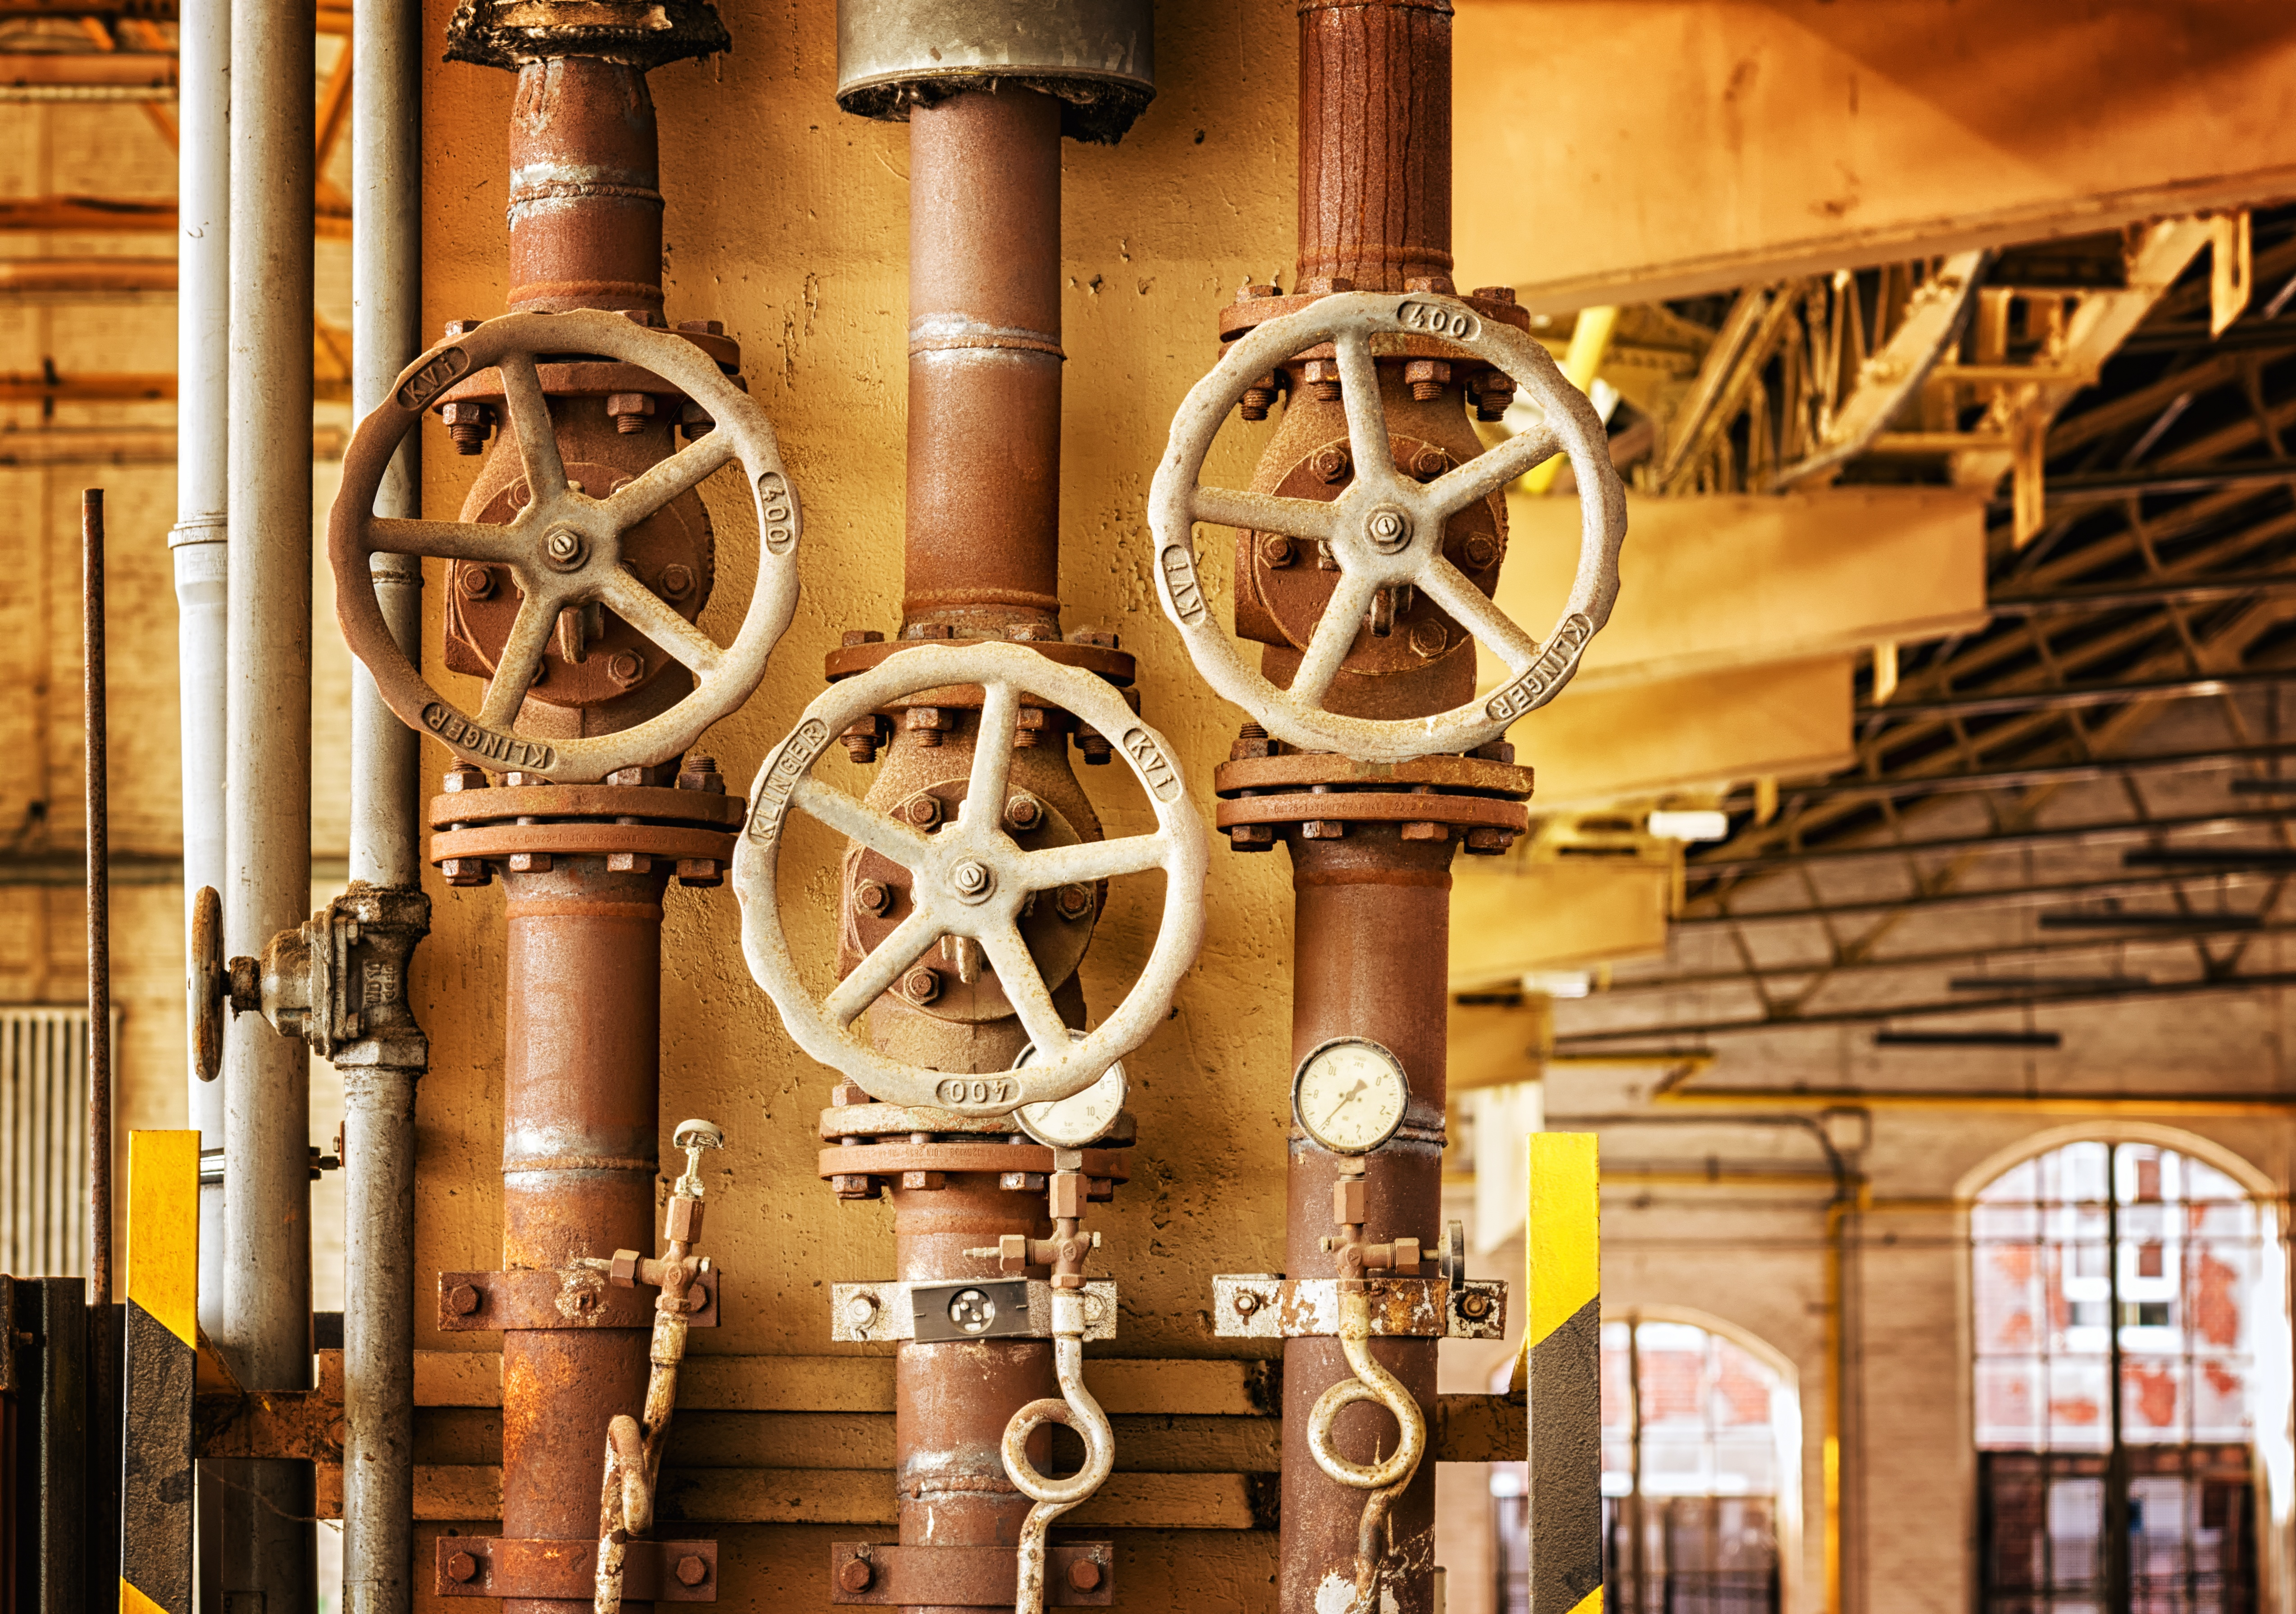 Free stock photo of industry, metal, factory, pipes